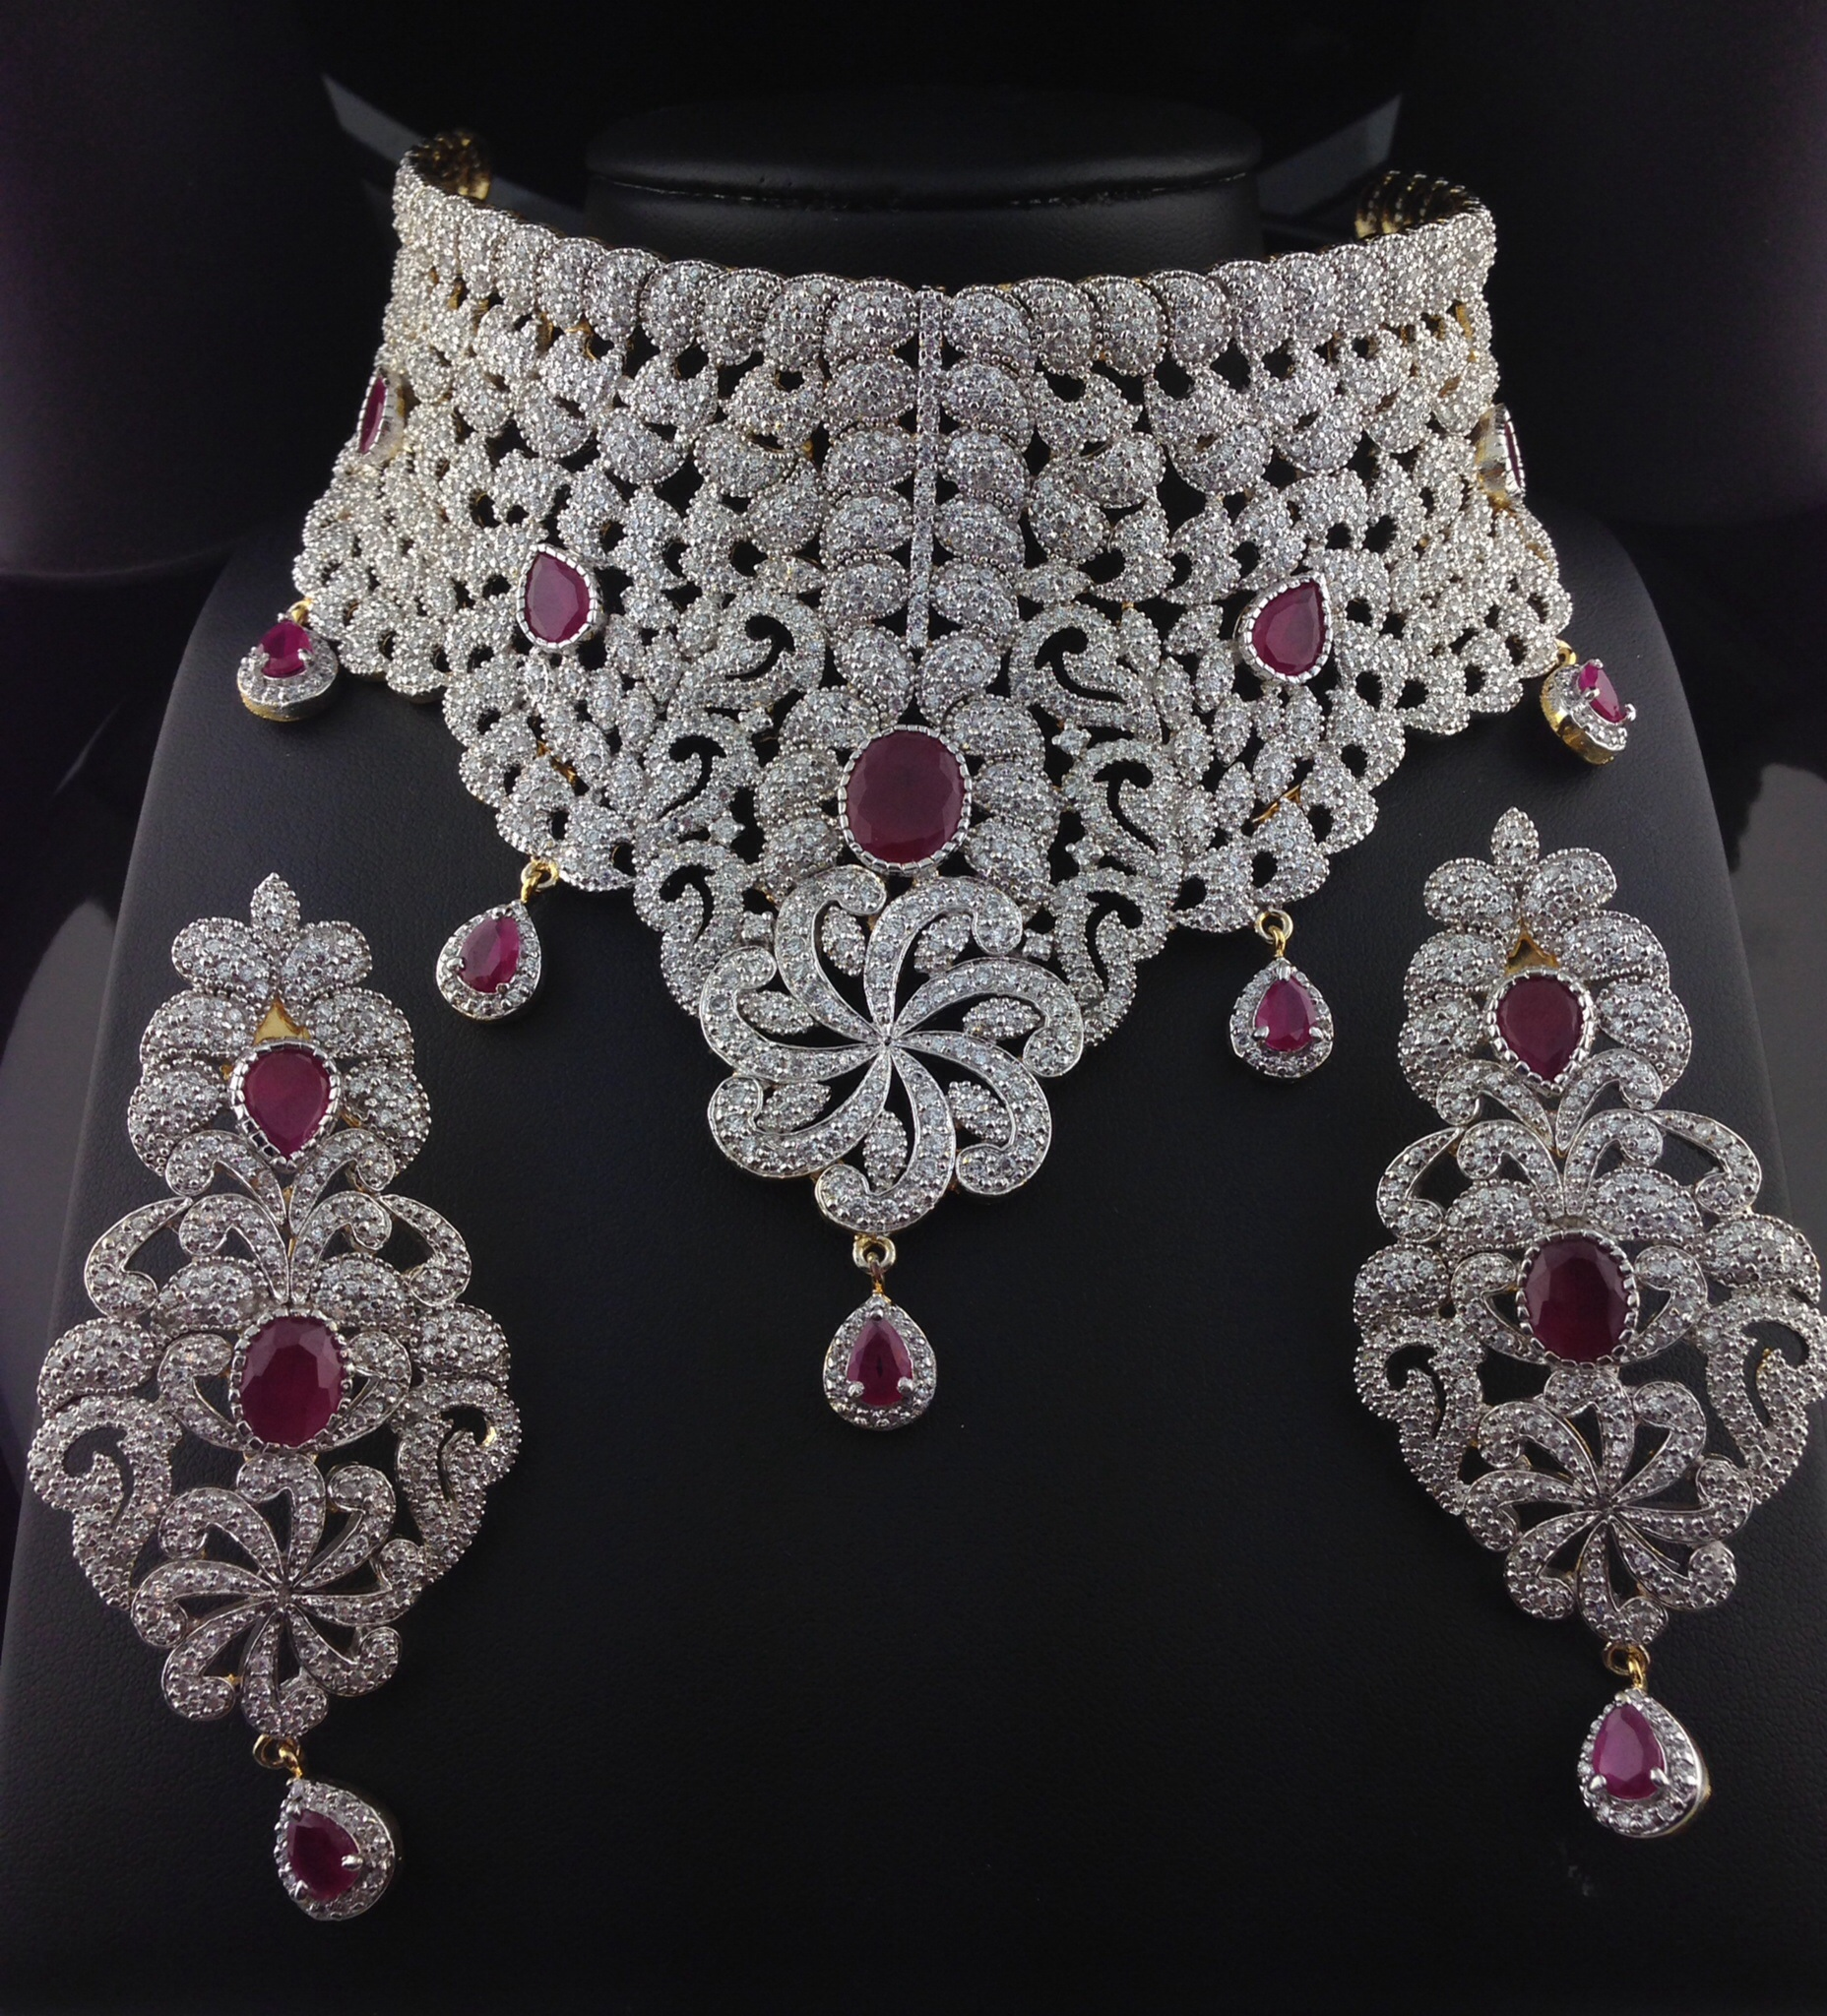 Stunning American Diamond Bridal Set With Rubies Indian Kundan Ic And Gold Jewelry In Atlanta Online